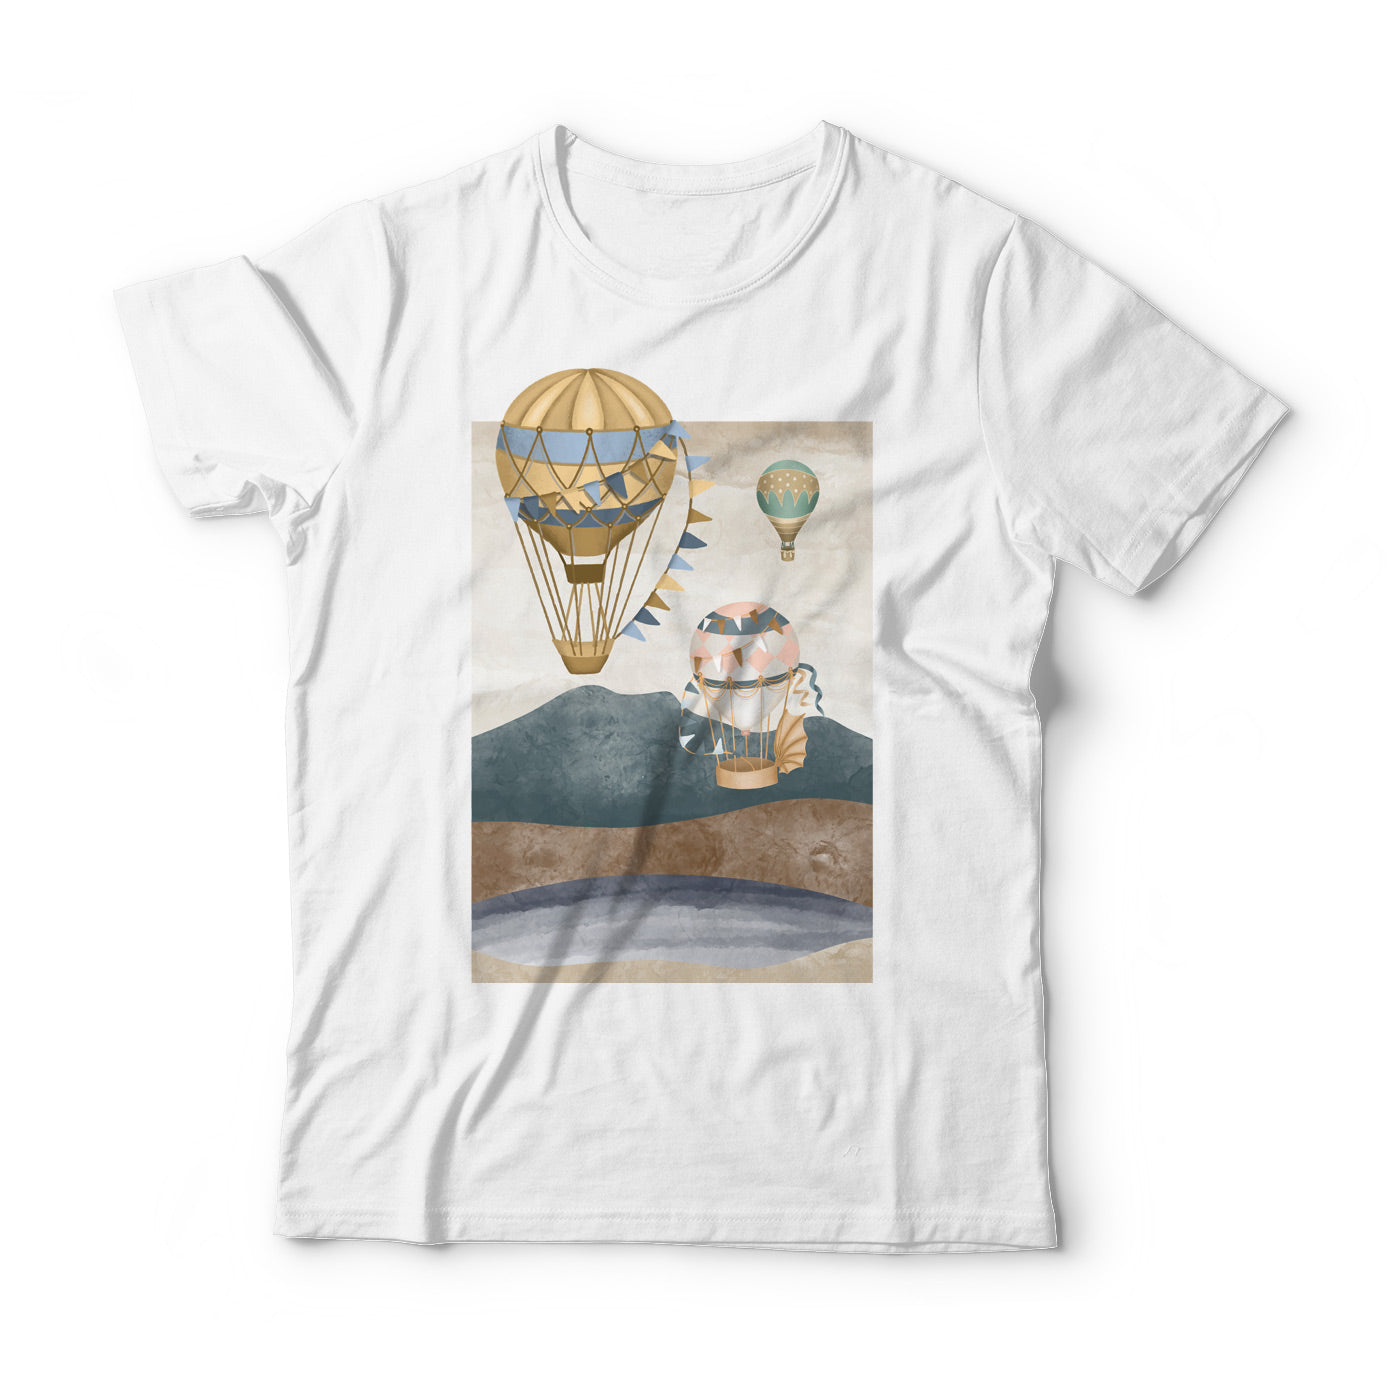 Pollogie™ Ballon Land T-Shirt